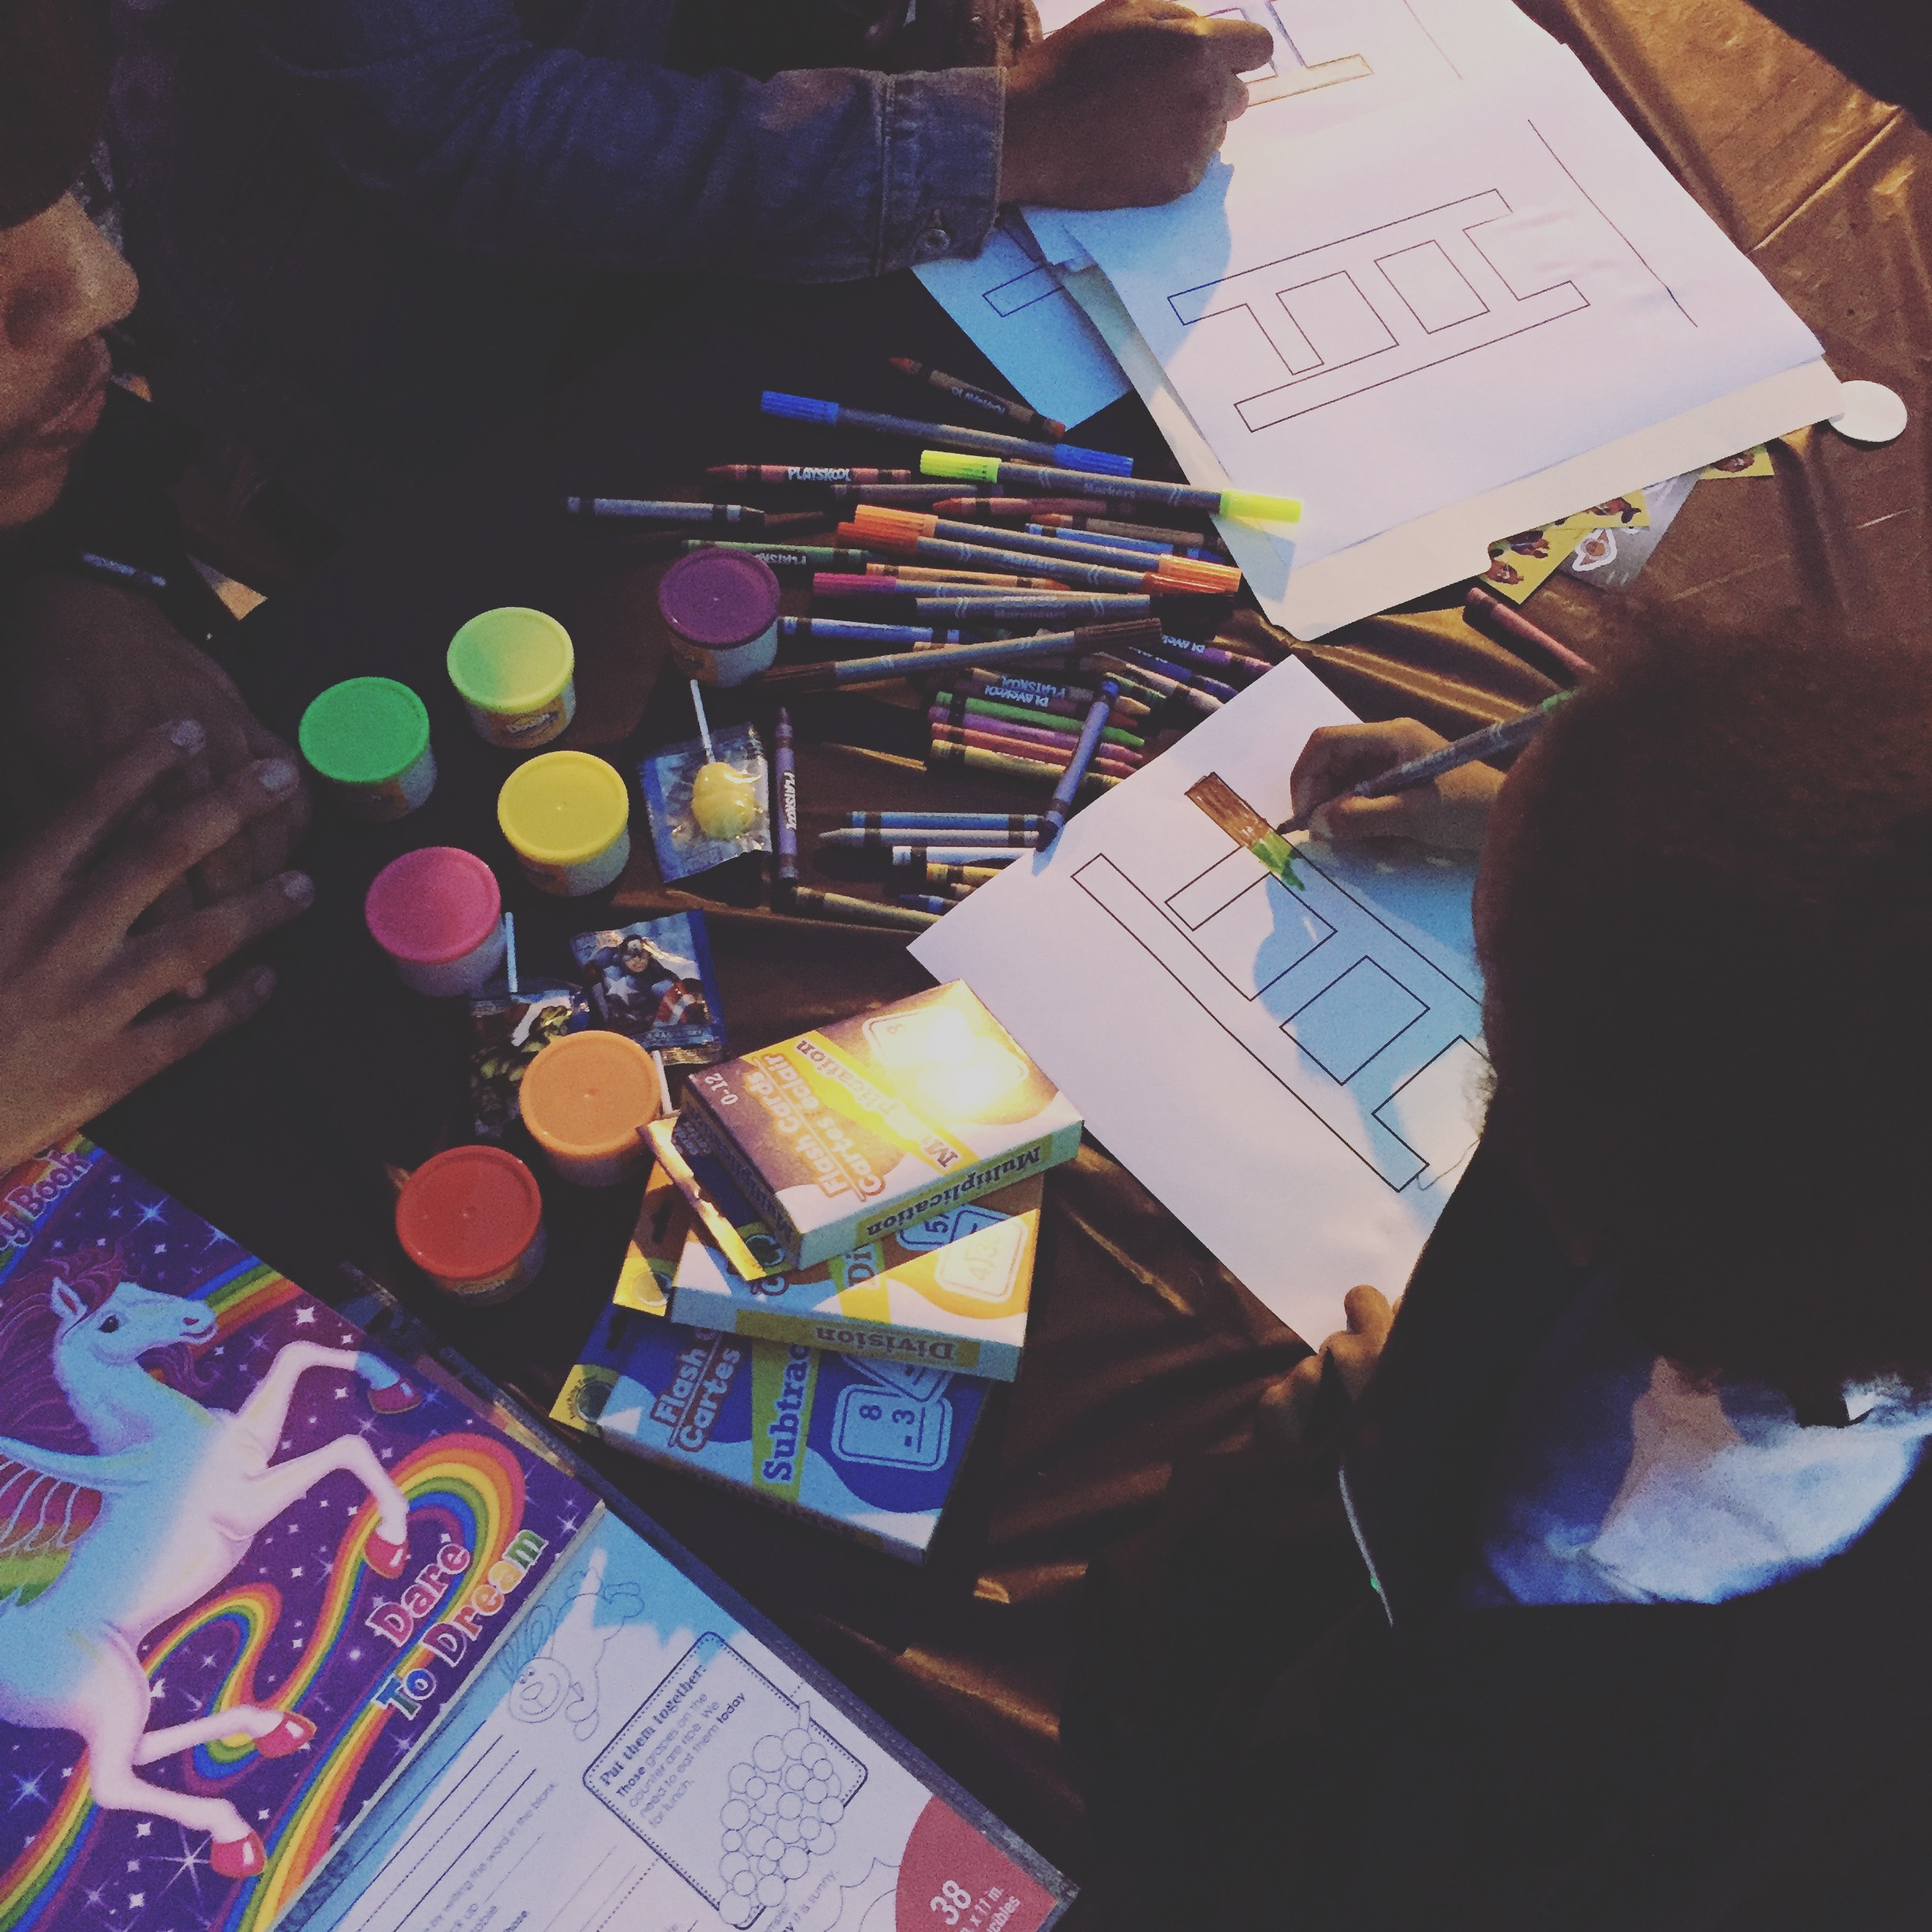 """October 31, 2016  """"TreeHouse SideWalk Party"""" Outside of the Anacostia Library  Along with candy and toys,children were given flash cards, art supplies, and a space to express themselves creatively."""